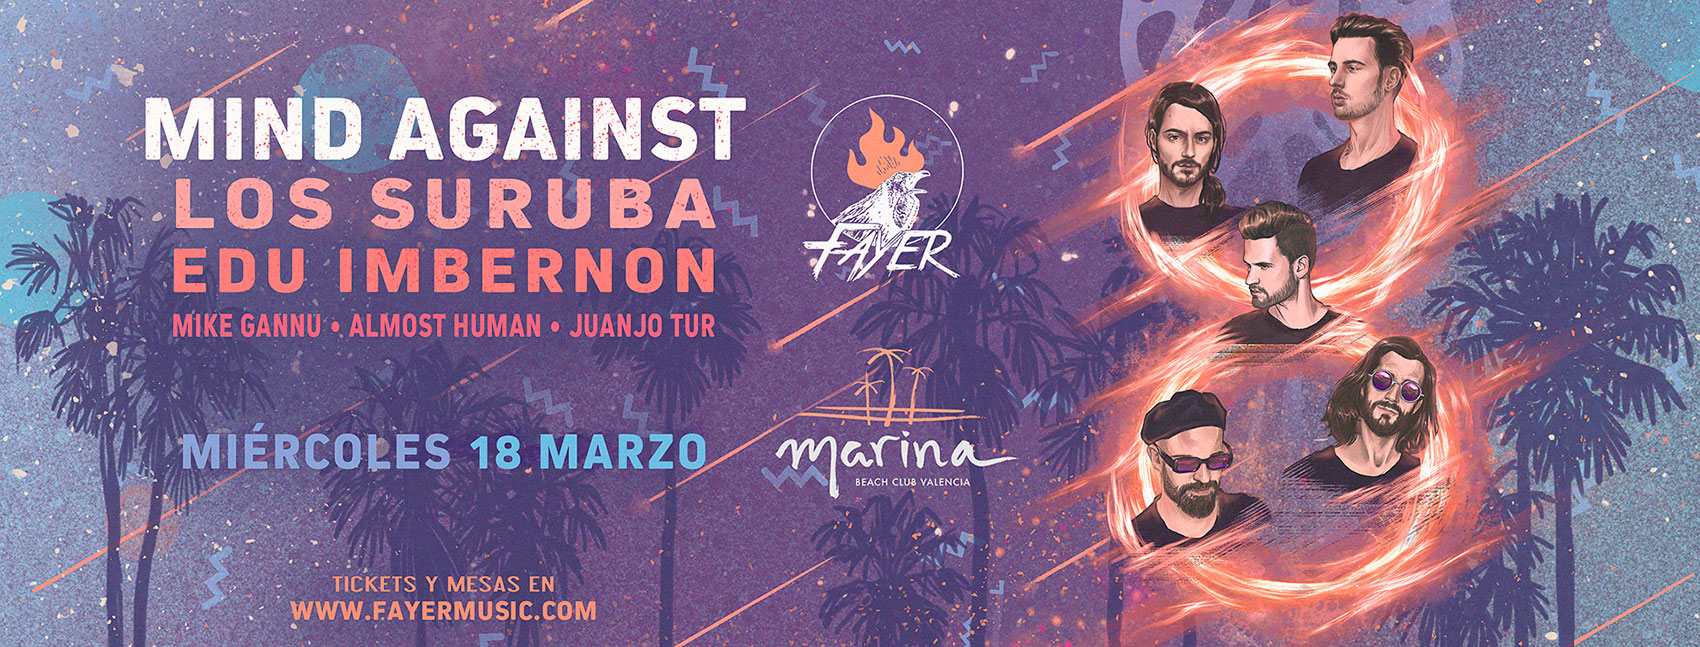 Mind Against and Los Suruba next Fayer march 2020 Valencia